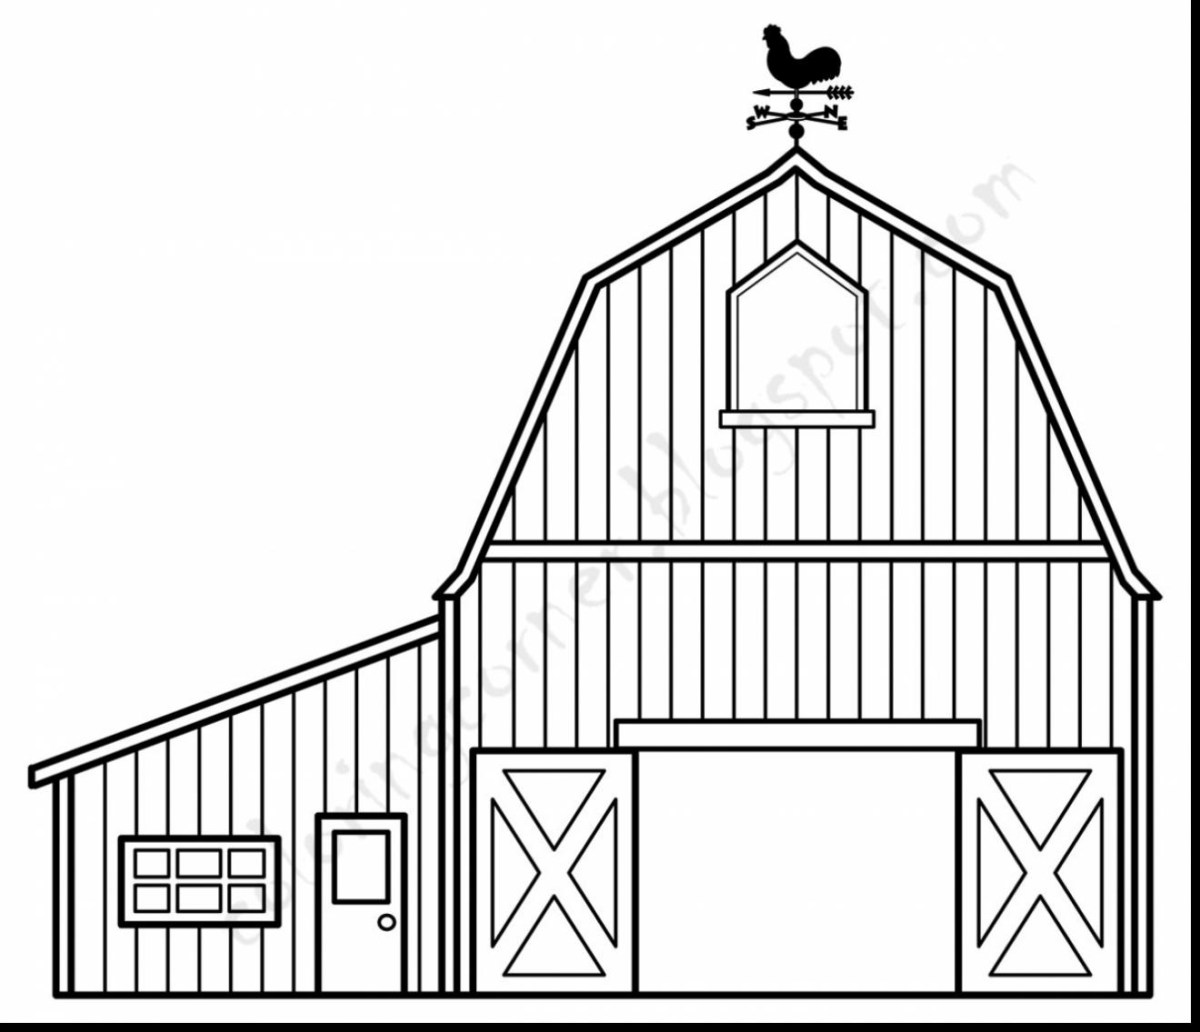 Barn Coloring Pages Barn Outline Barn Coloring Pages Free Jpg Clipartix Birijus Com